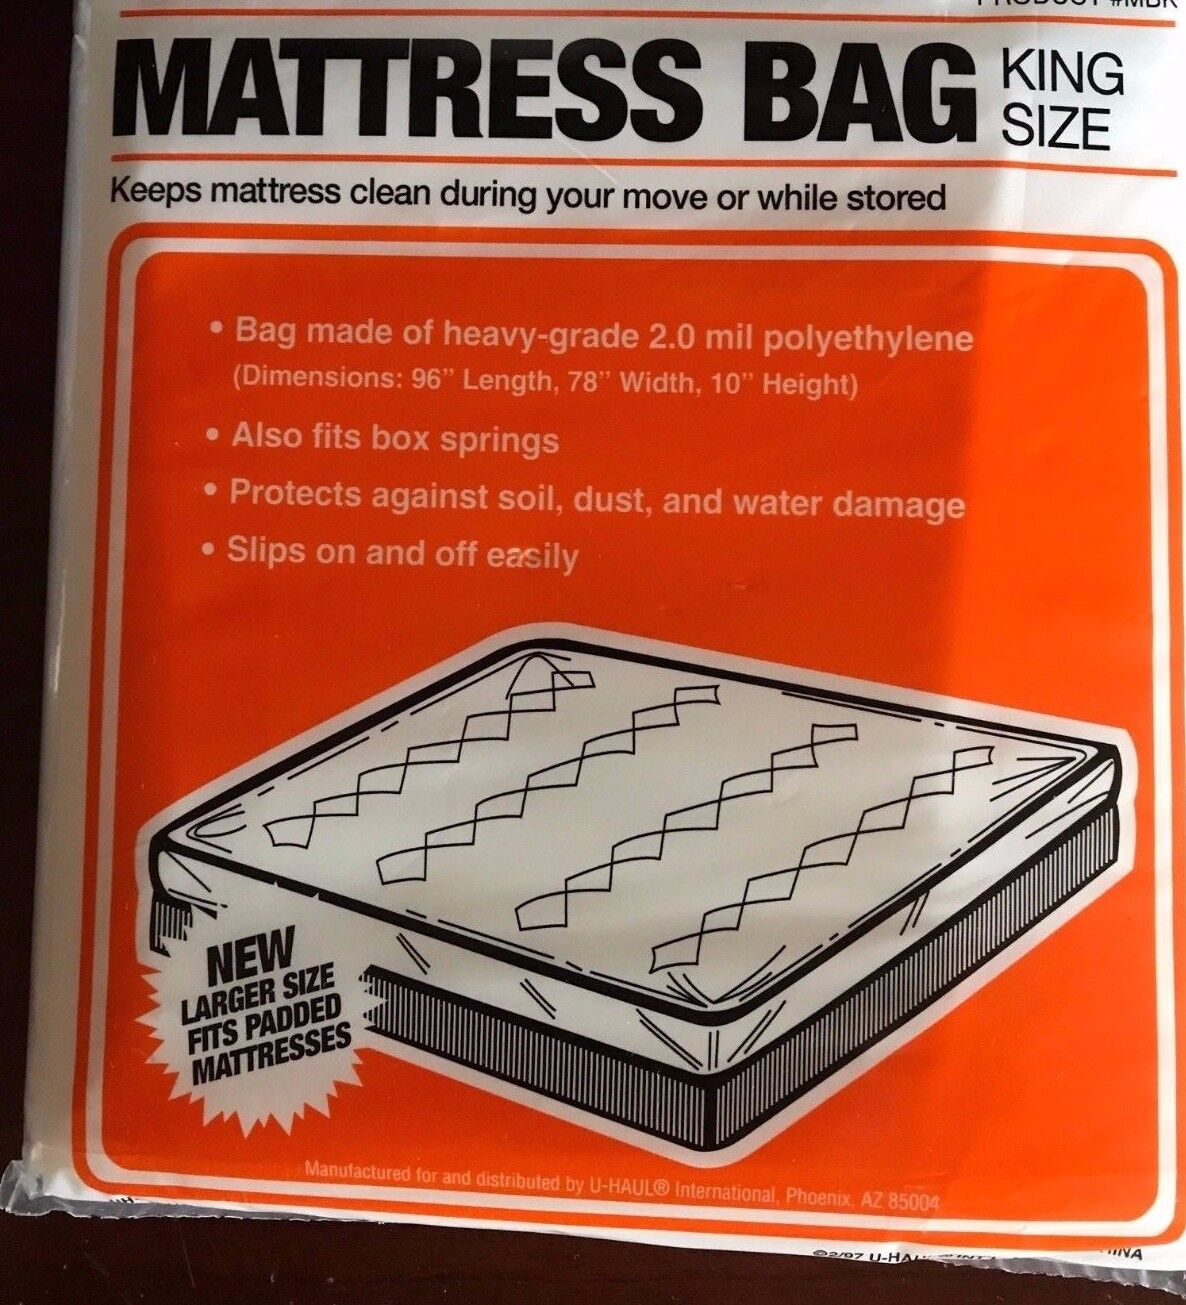 King Size Mattress Bag for Moving / Storage Also fits box sp